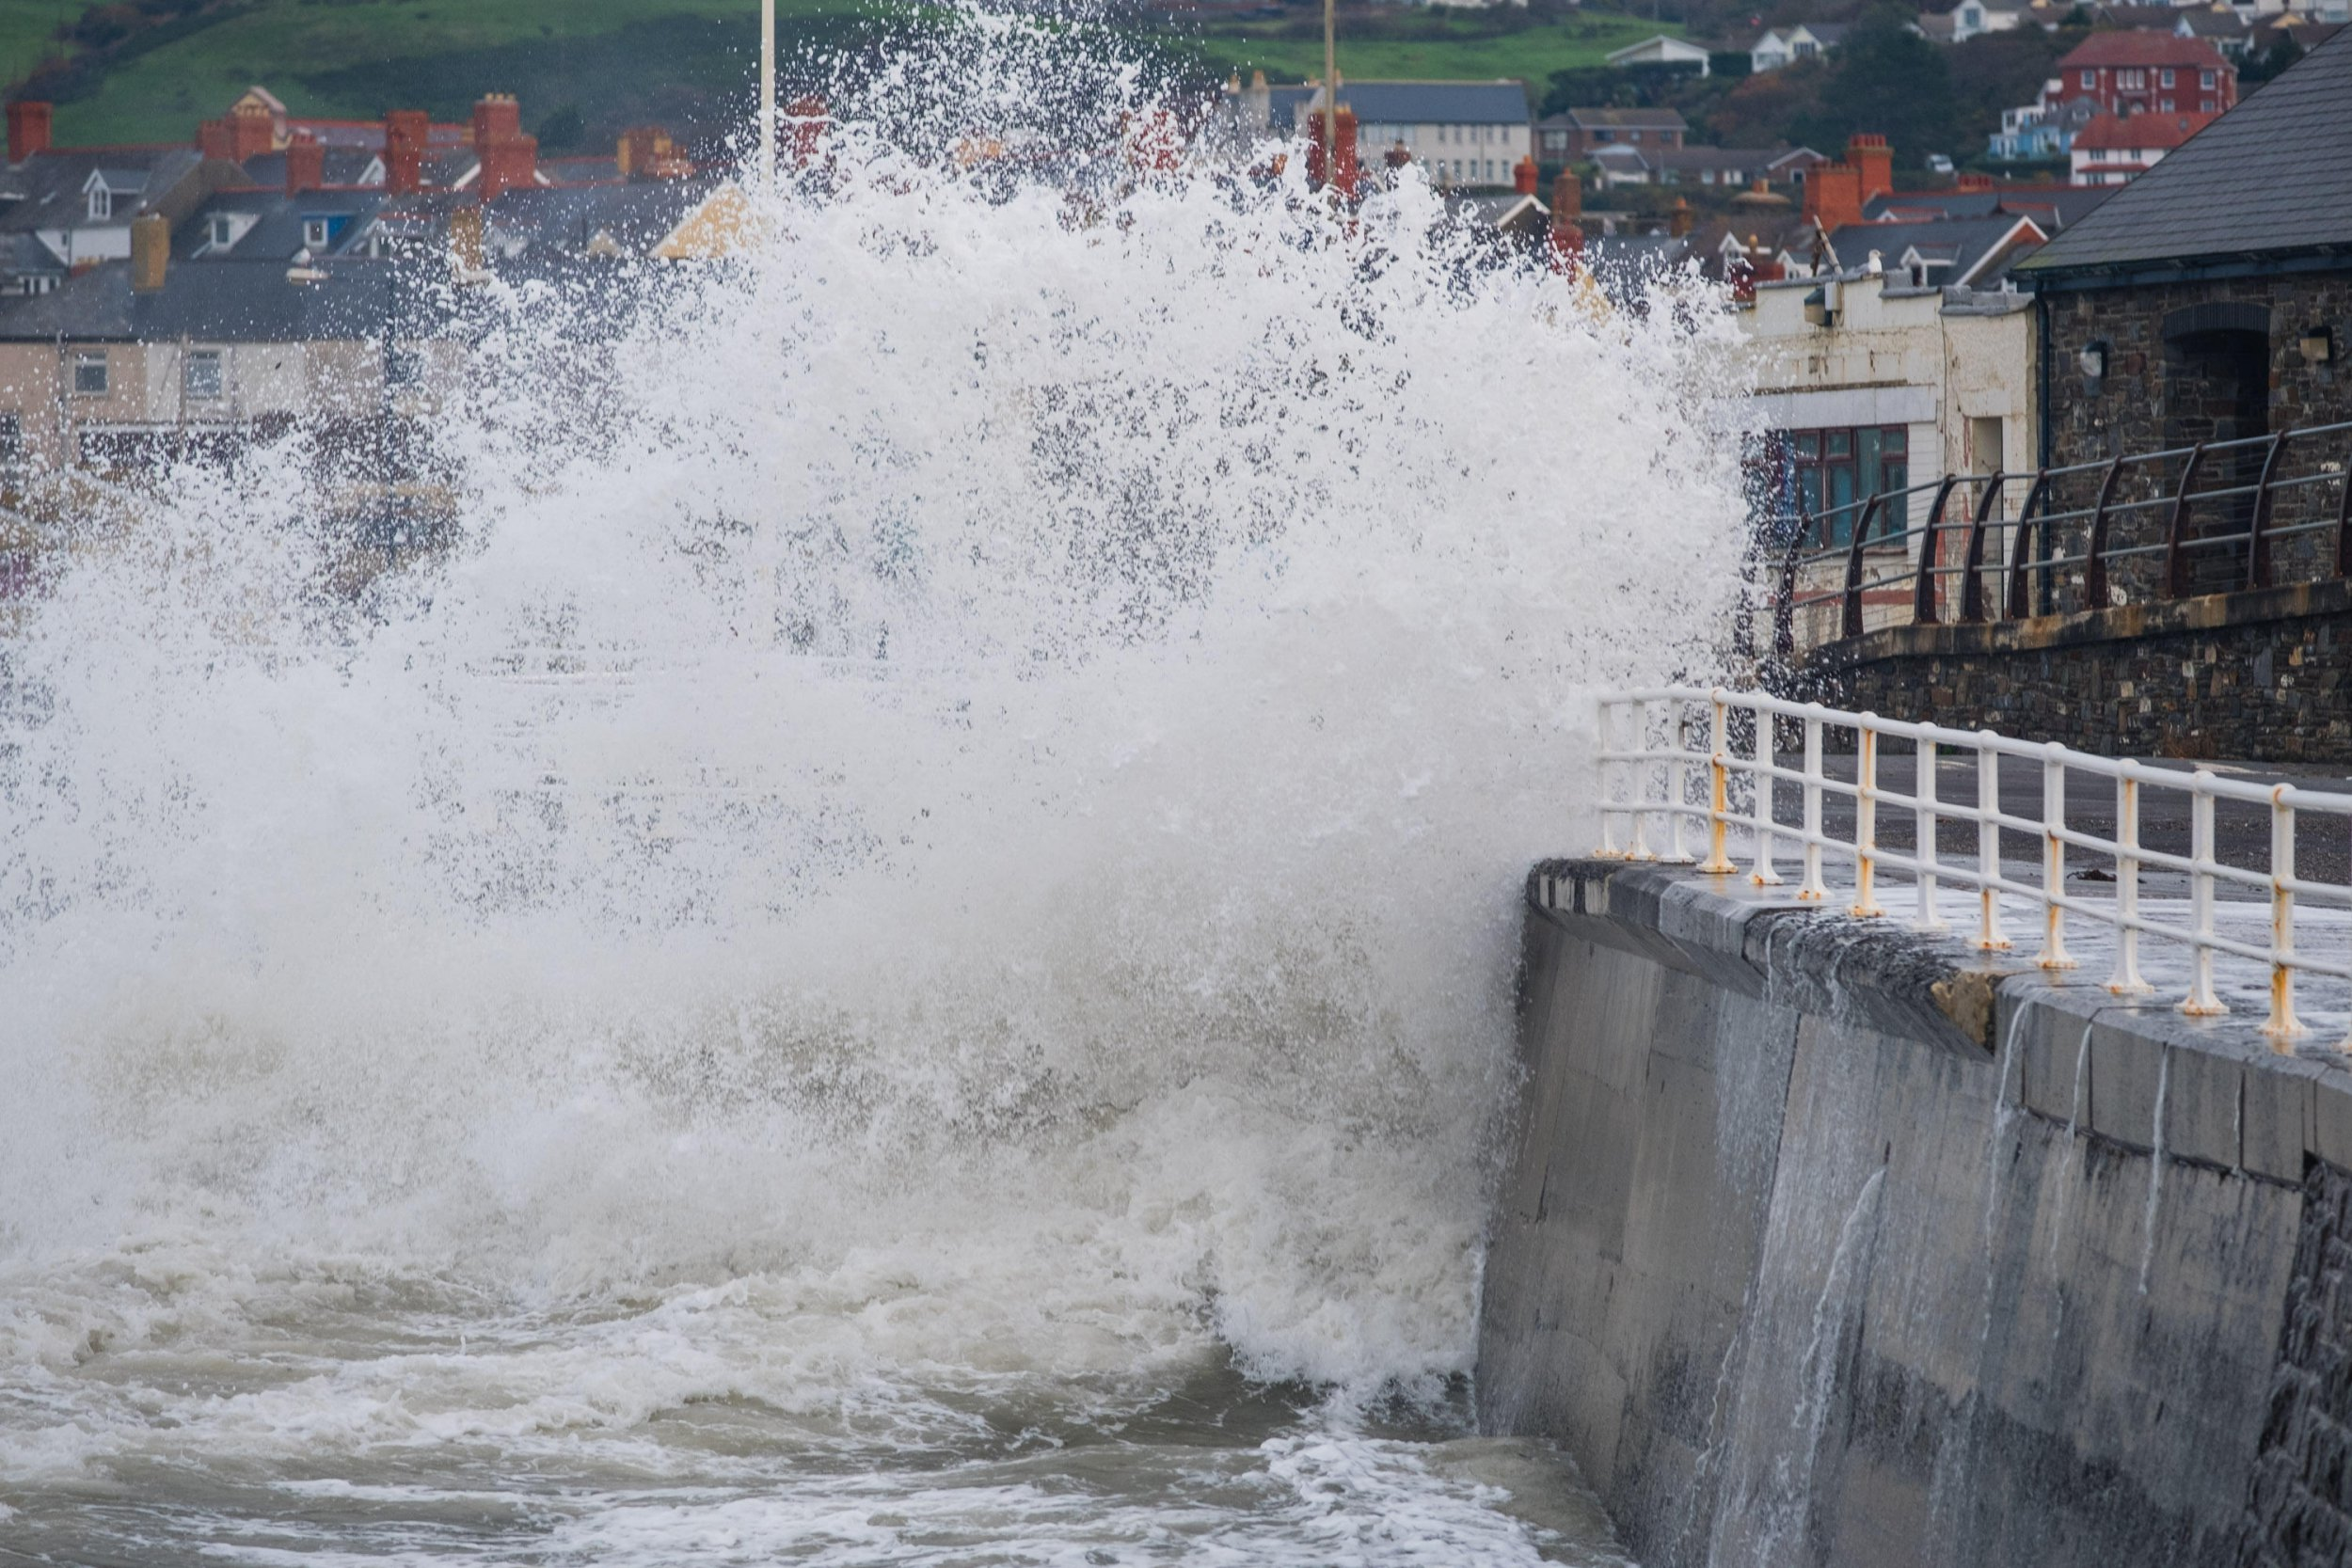 Alamy Live News. R135DM Aberystwyth Wales UK, 9th Nov 2018.?UK Weather: At the morning high tide, huge waves break against the sea walls in Aberystwyth as the weather again turns wet and windy. The Met Office have issued a Yellow Warning for strong winds, heavy rain and the likelihood of river and coastal flooding for large parts of south Wales and the west country today?photo credit Keith Morris/Alamy Live News This is an Alamy Live News image and may not be part of your current Alamy deal . If you are unsure, please contact our sales team to check.